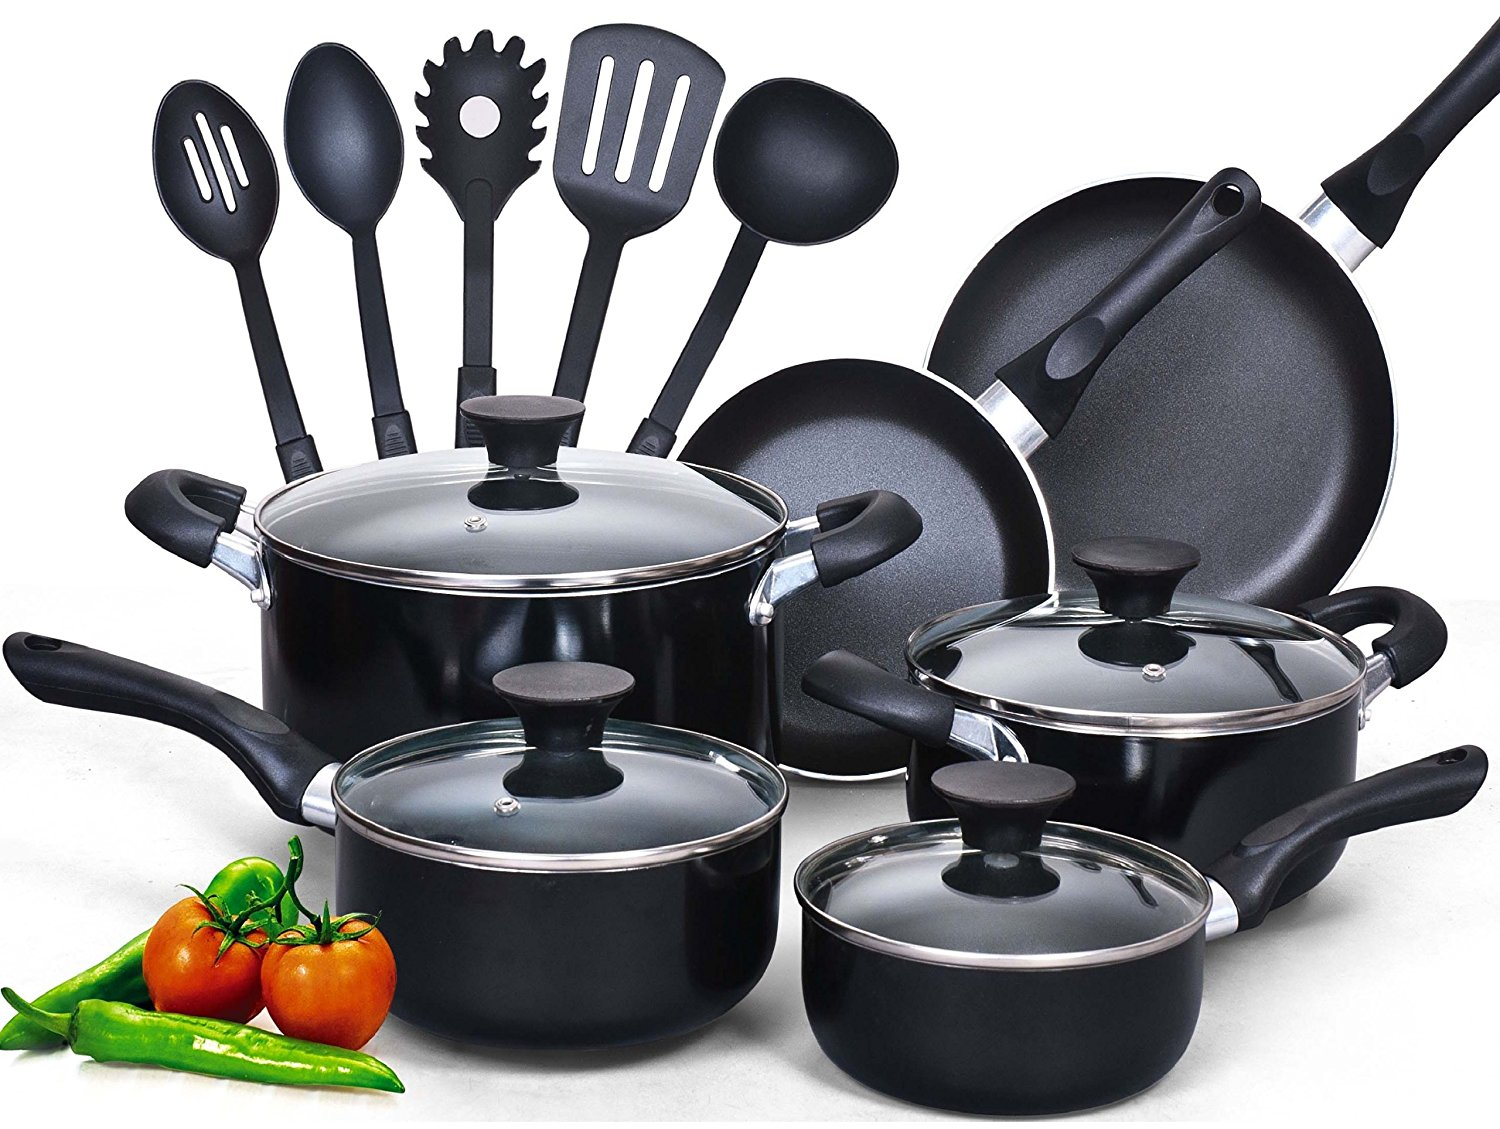 Beau Best Kitchenware Sets U0026 Top Cookware Sets